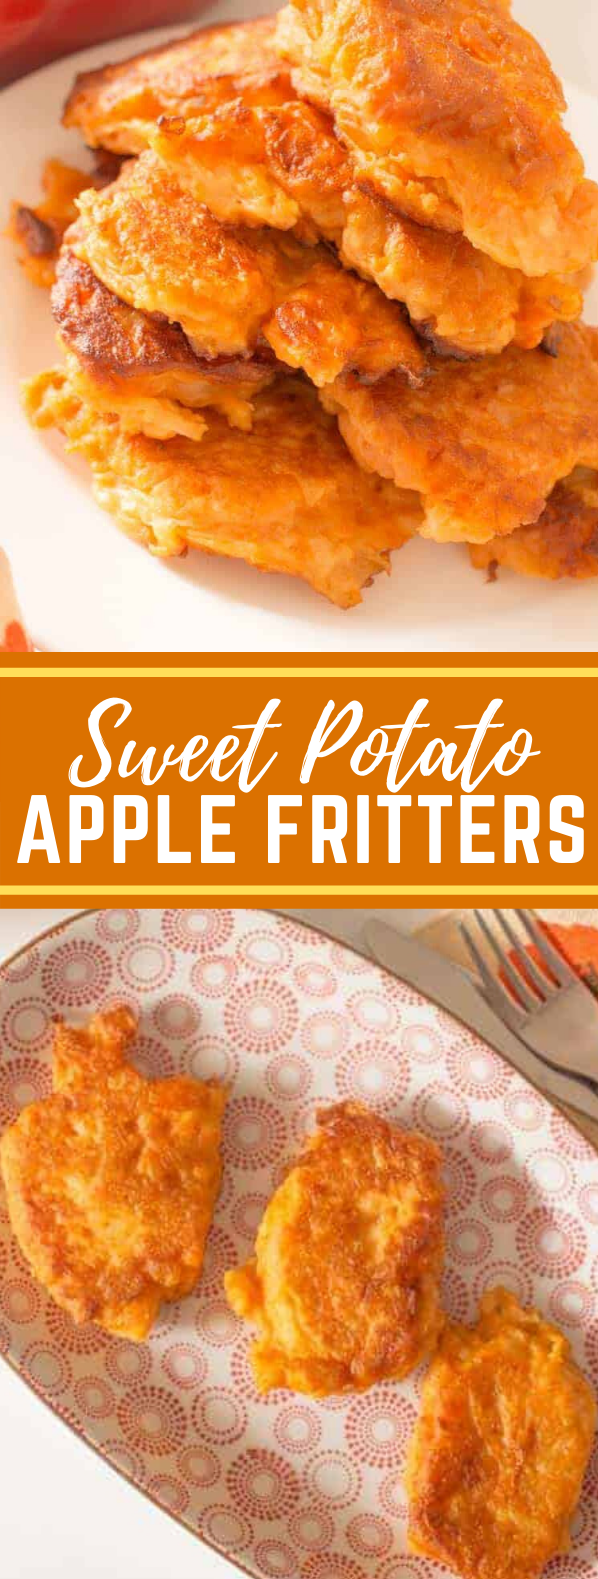 Sweet potato and apple fritters #meals #kidfriendly